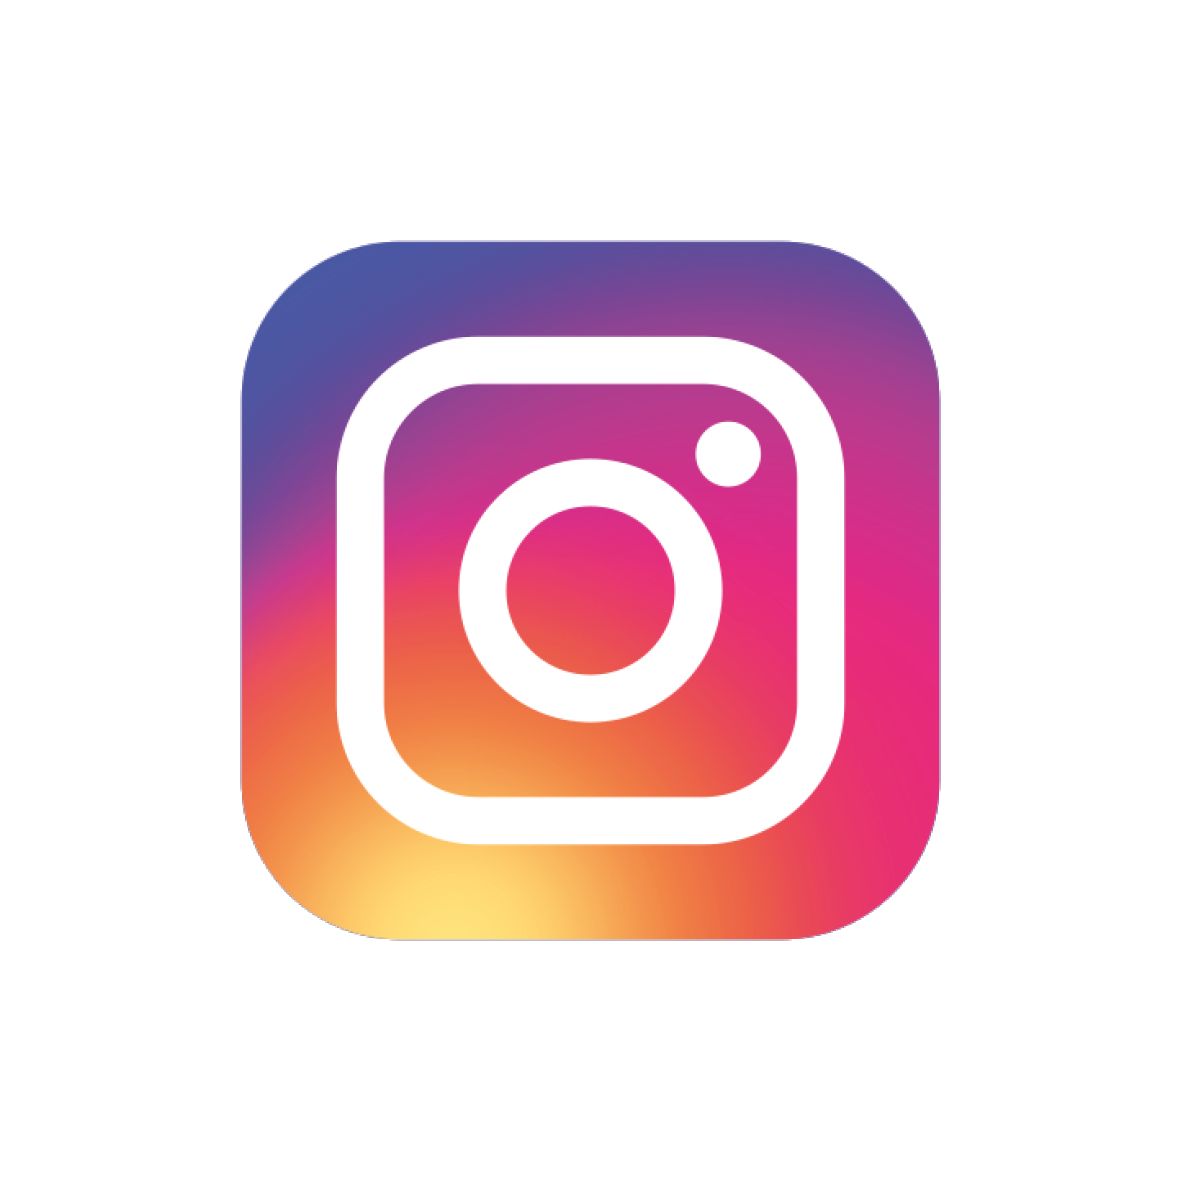 Logo Photography Computer Instagram Icons Download HQ PNG PNG Image